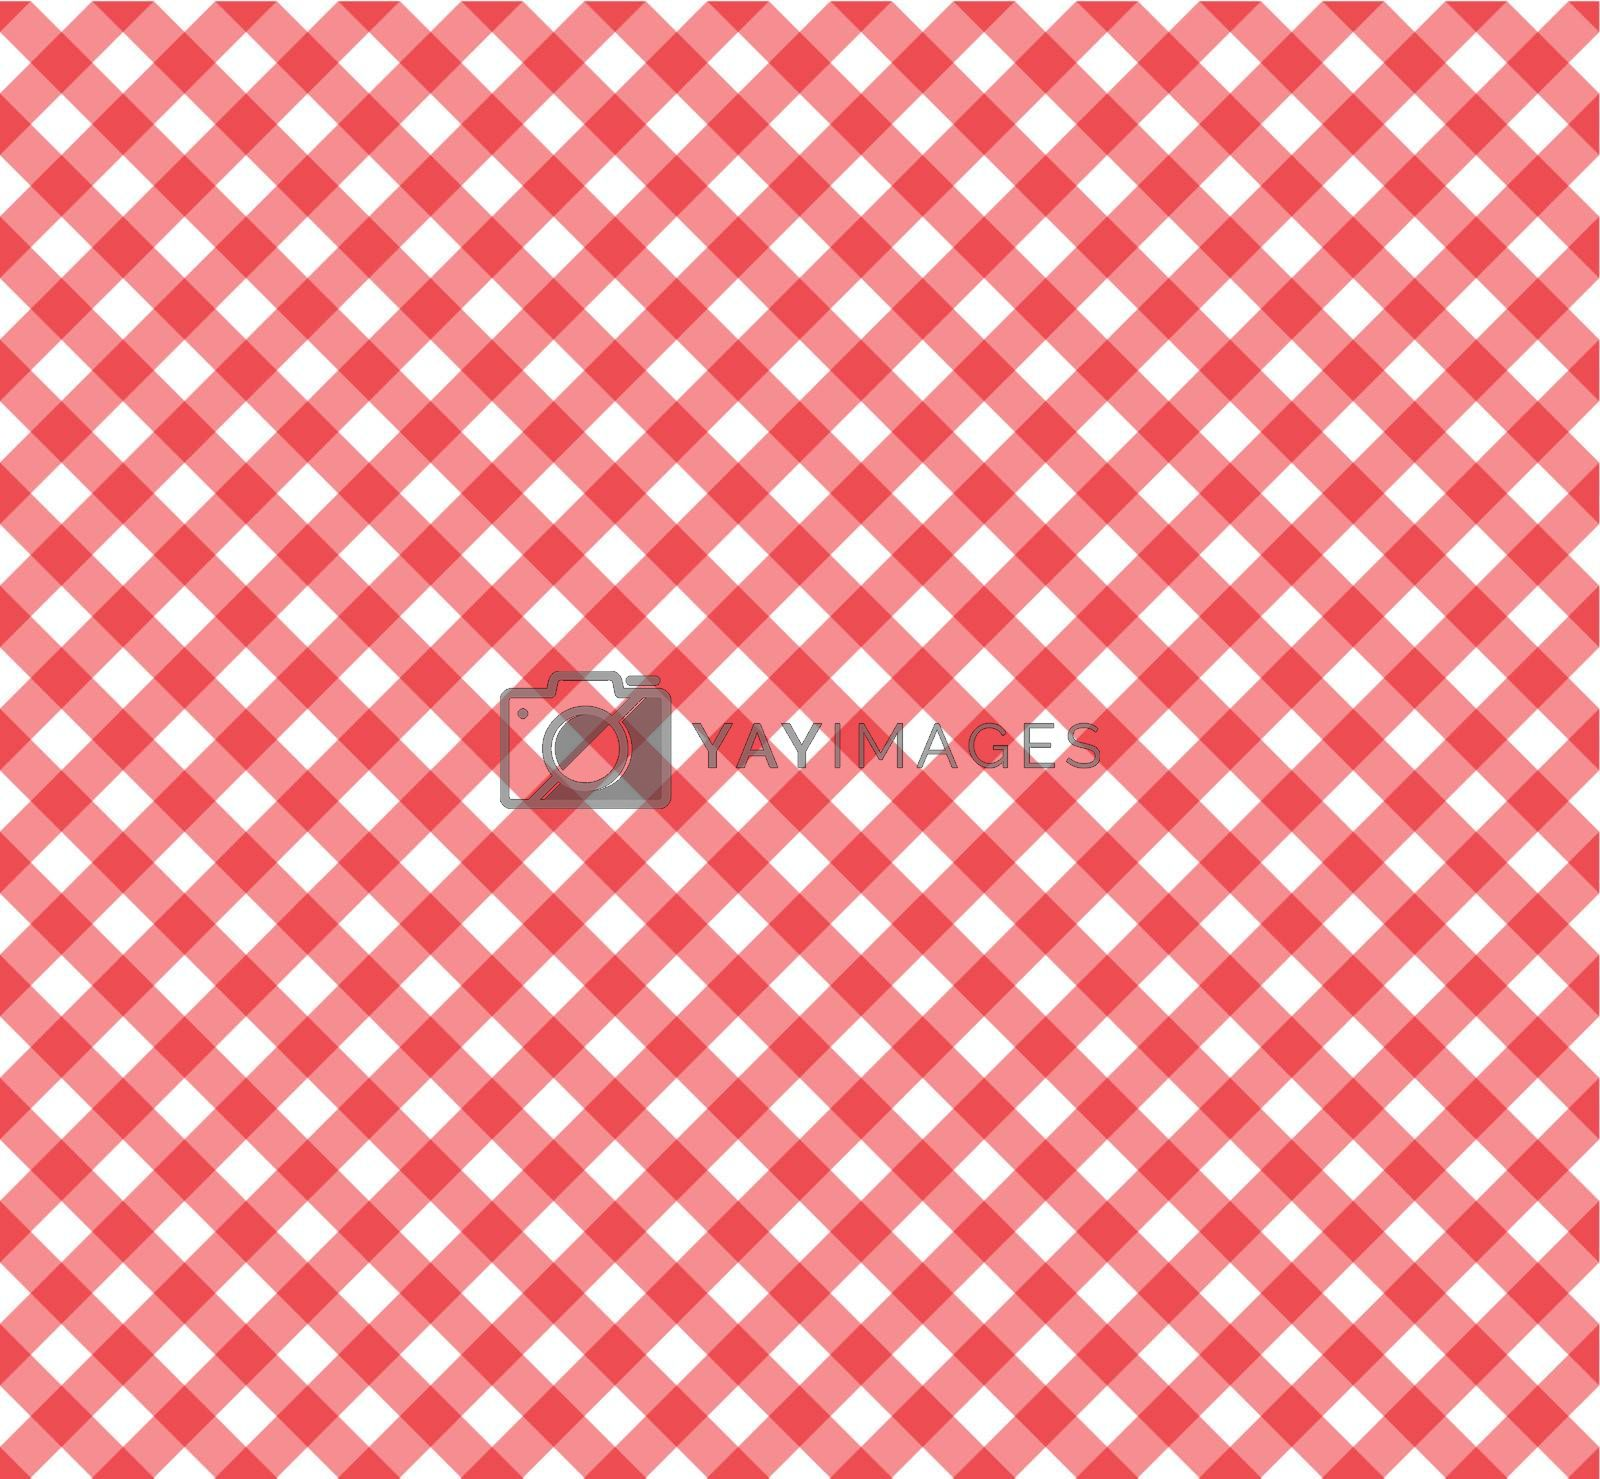 seamless gingham pattern in red and white.